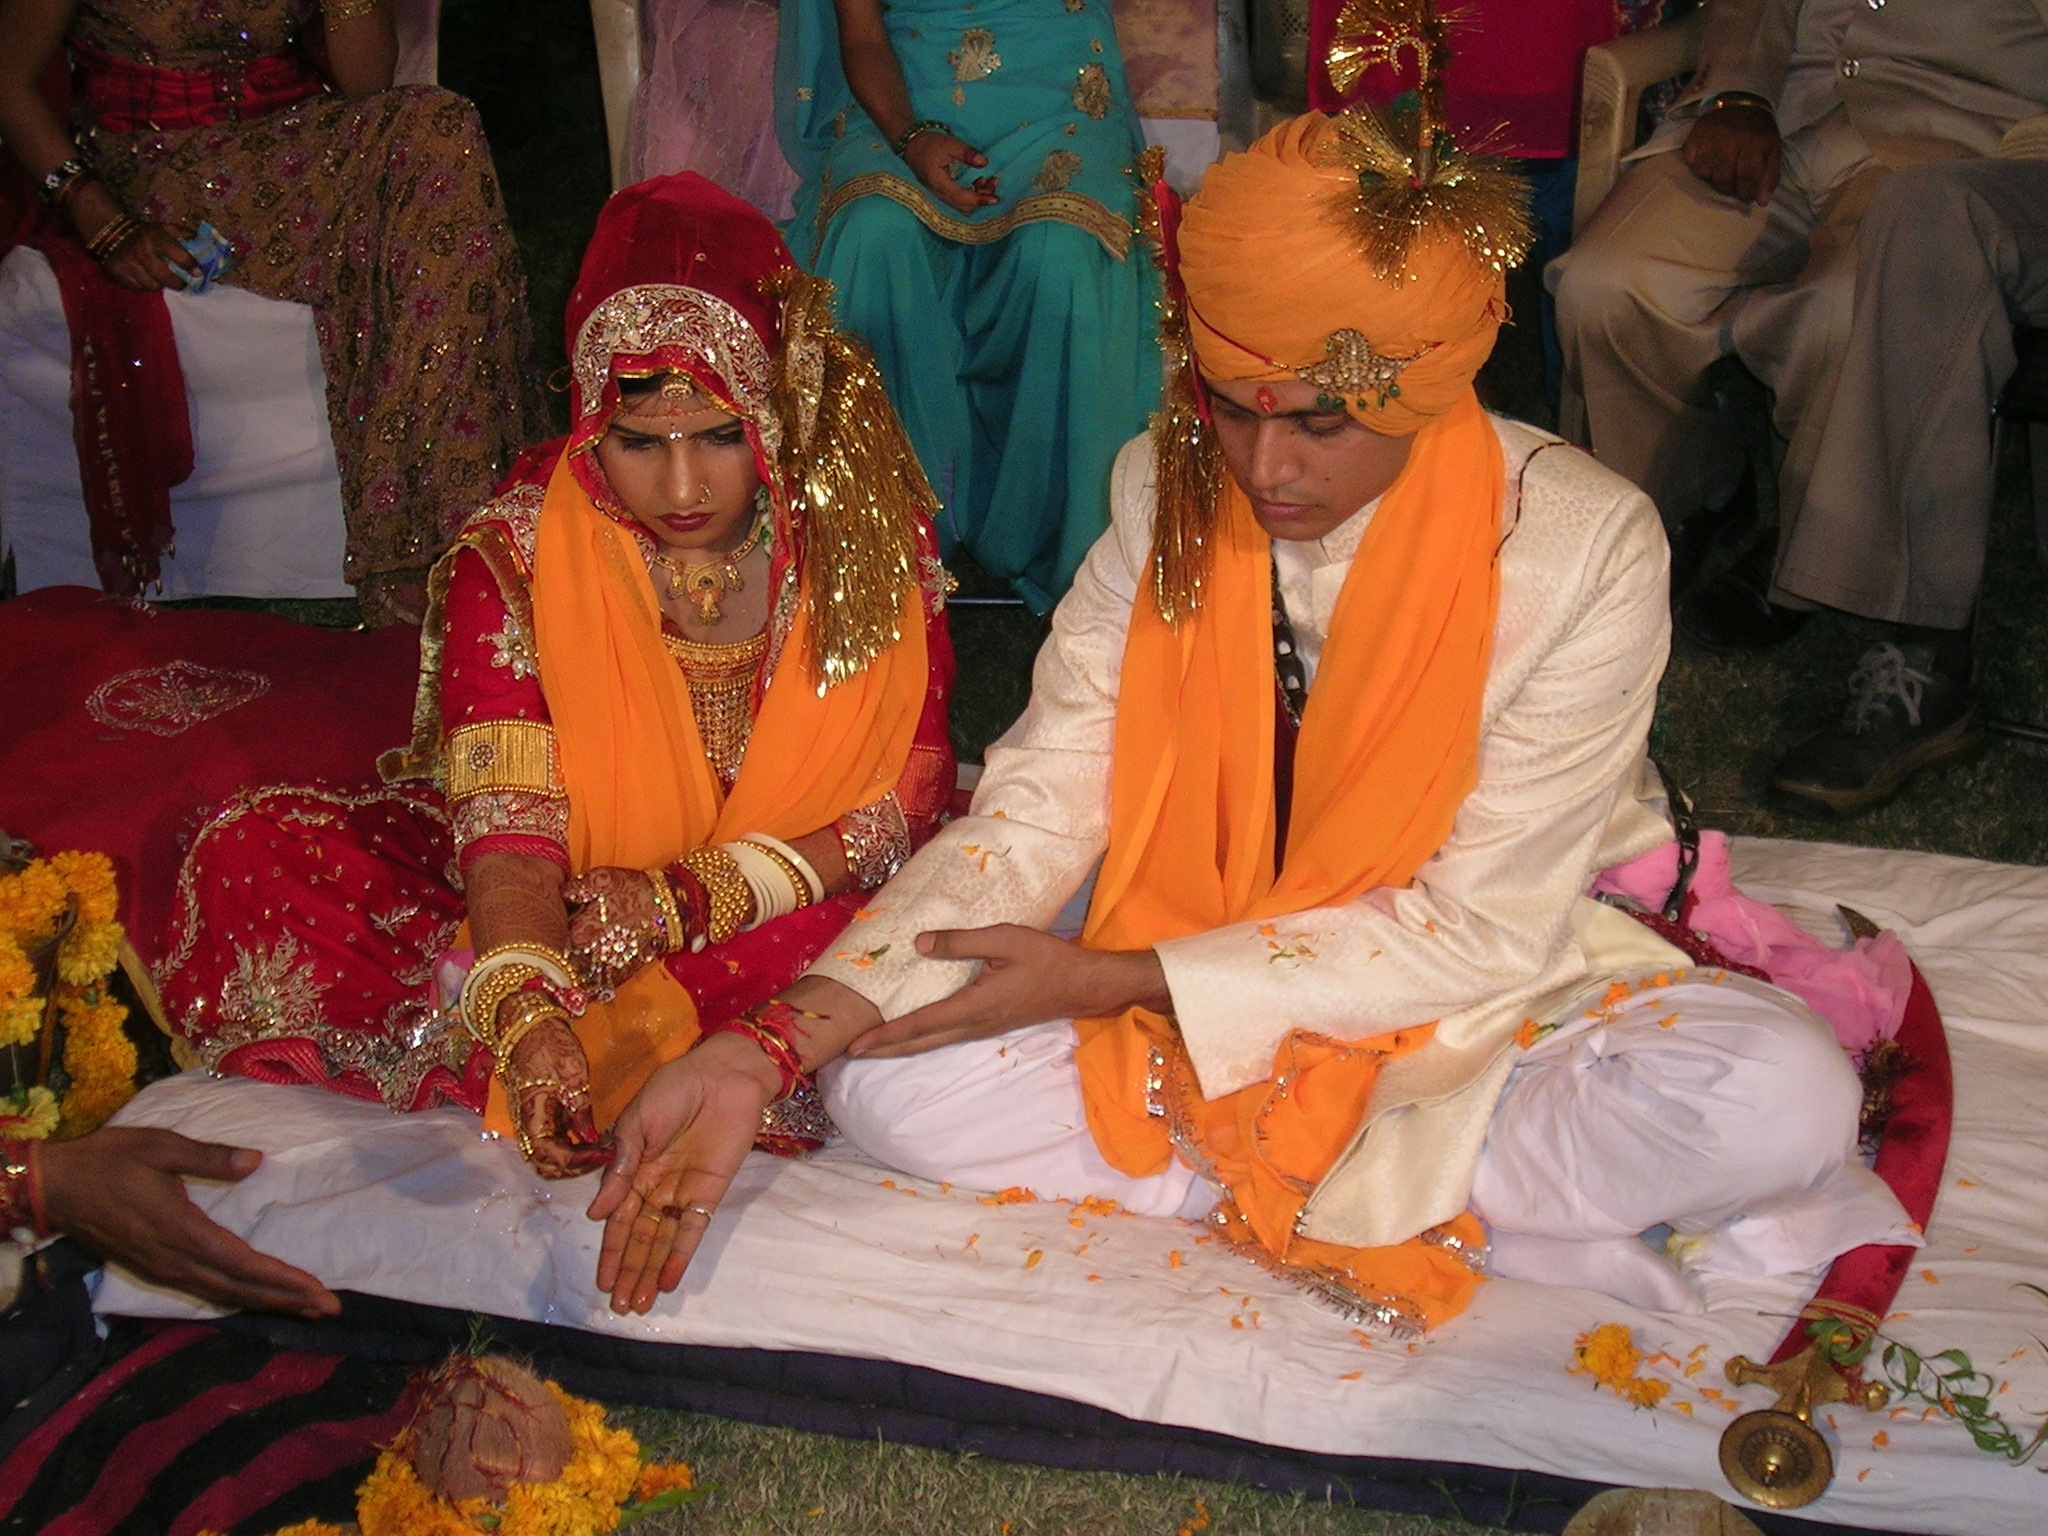 File:Hindu marriage ceremony offering.jpg - Wikipedia, the free ...